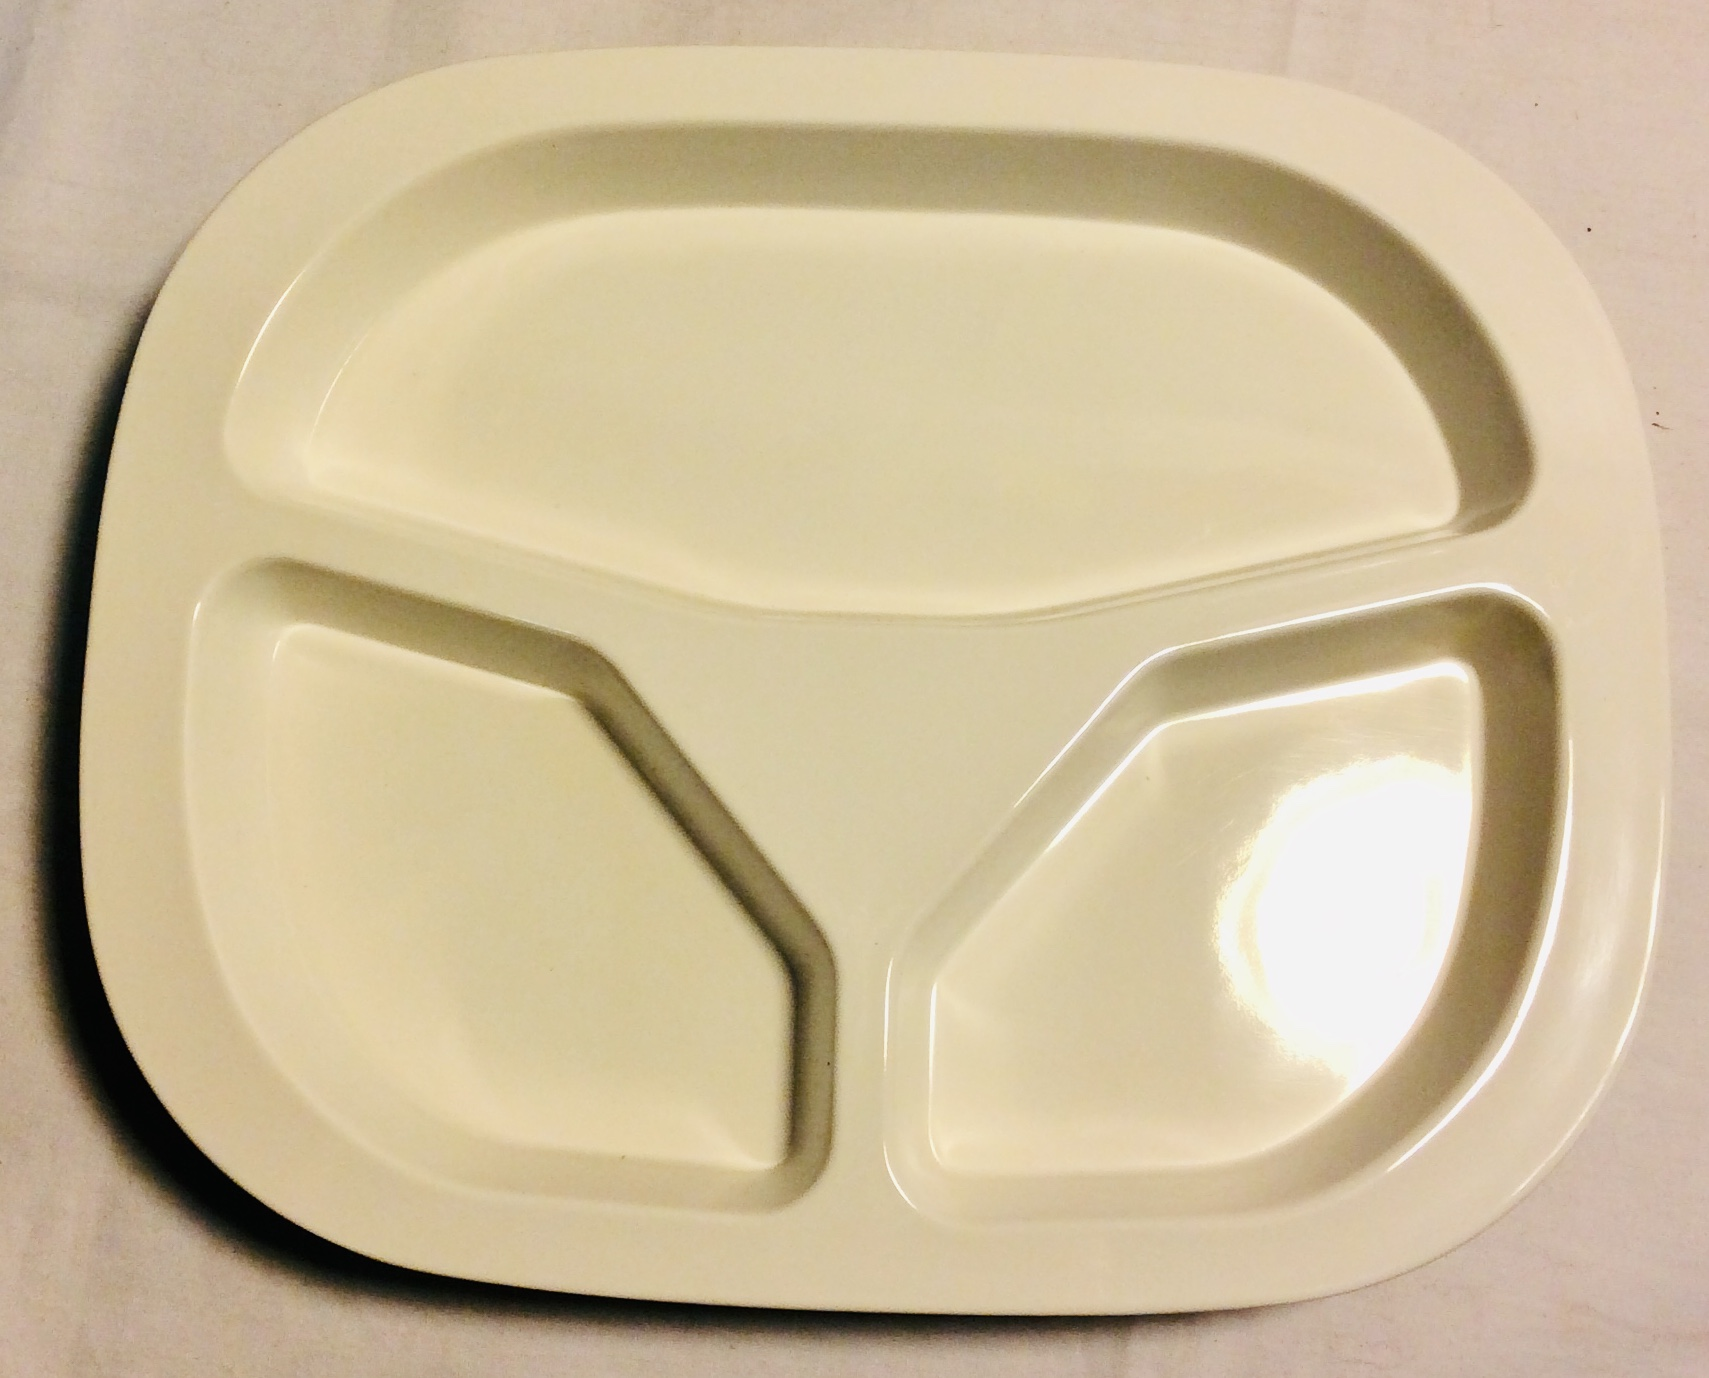 Cream Melamine Plates with dividers